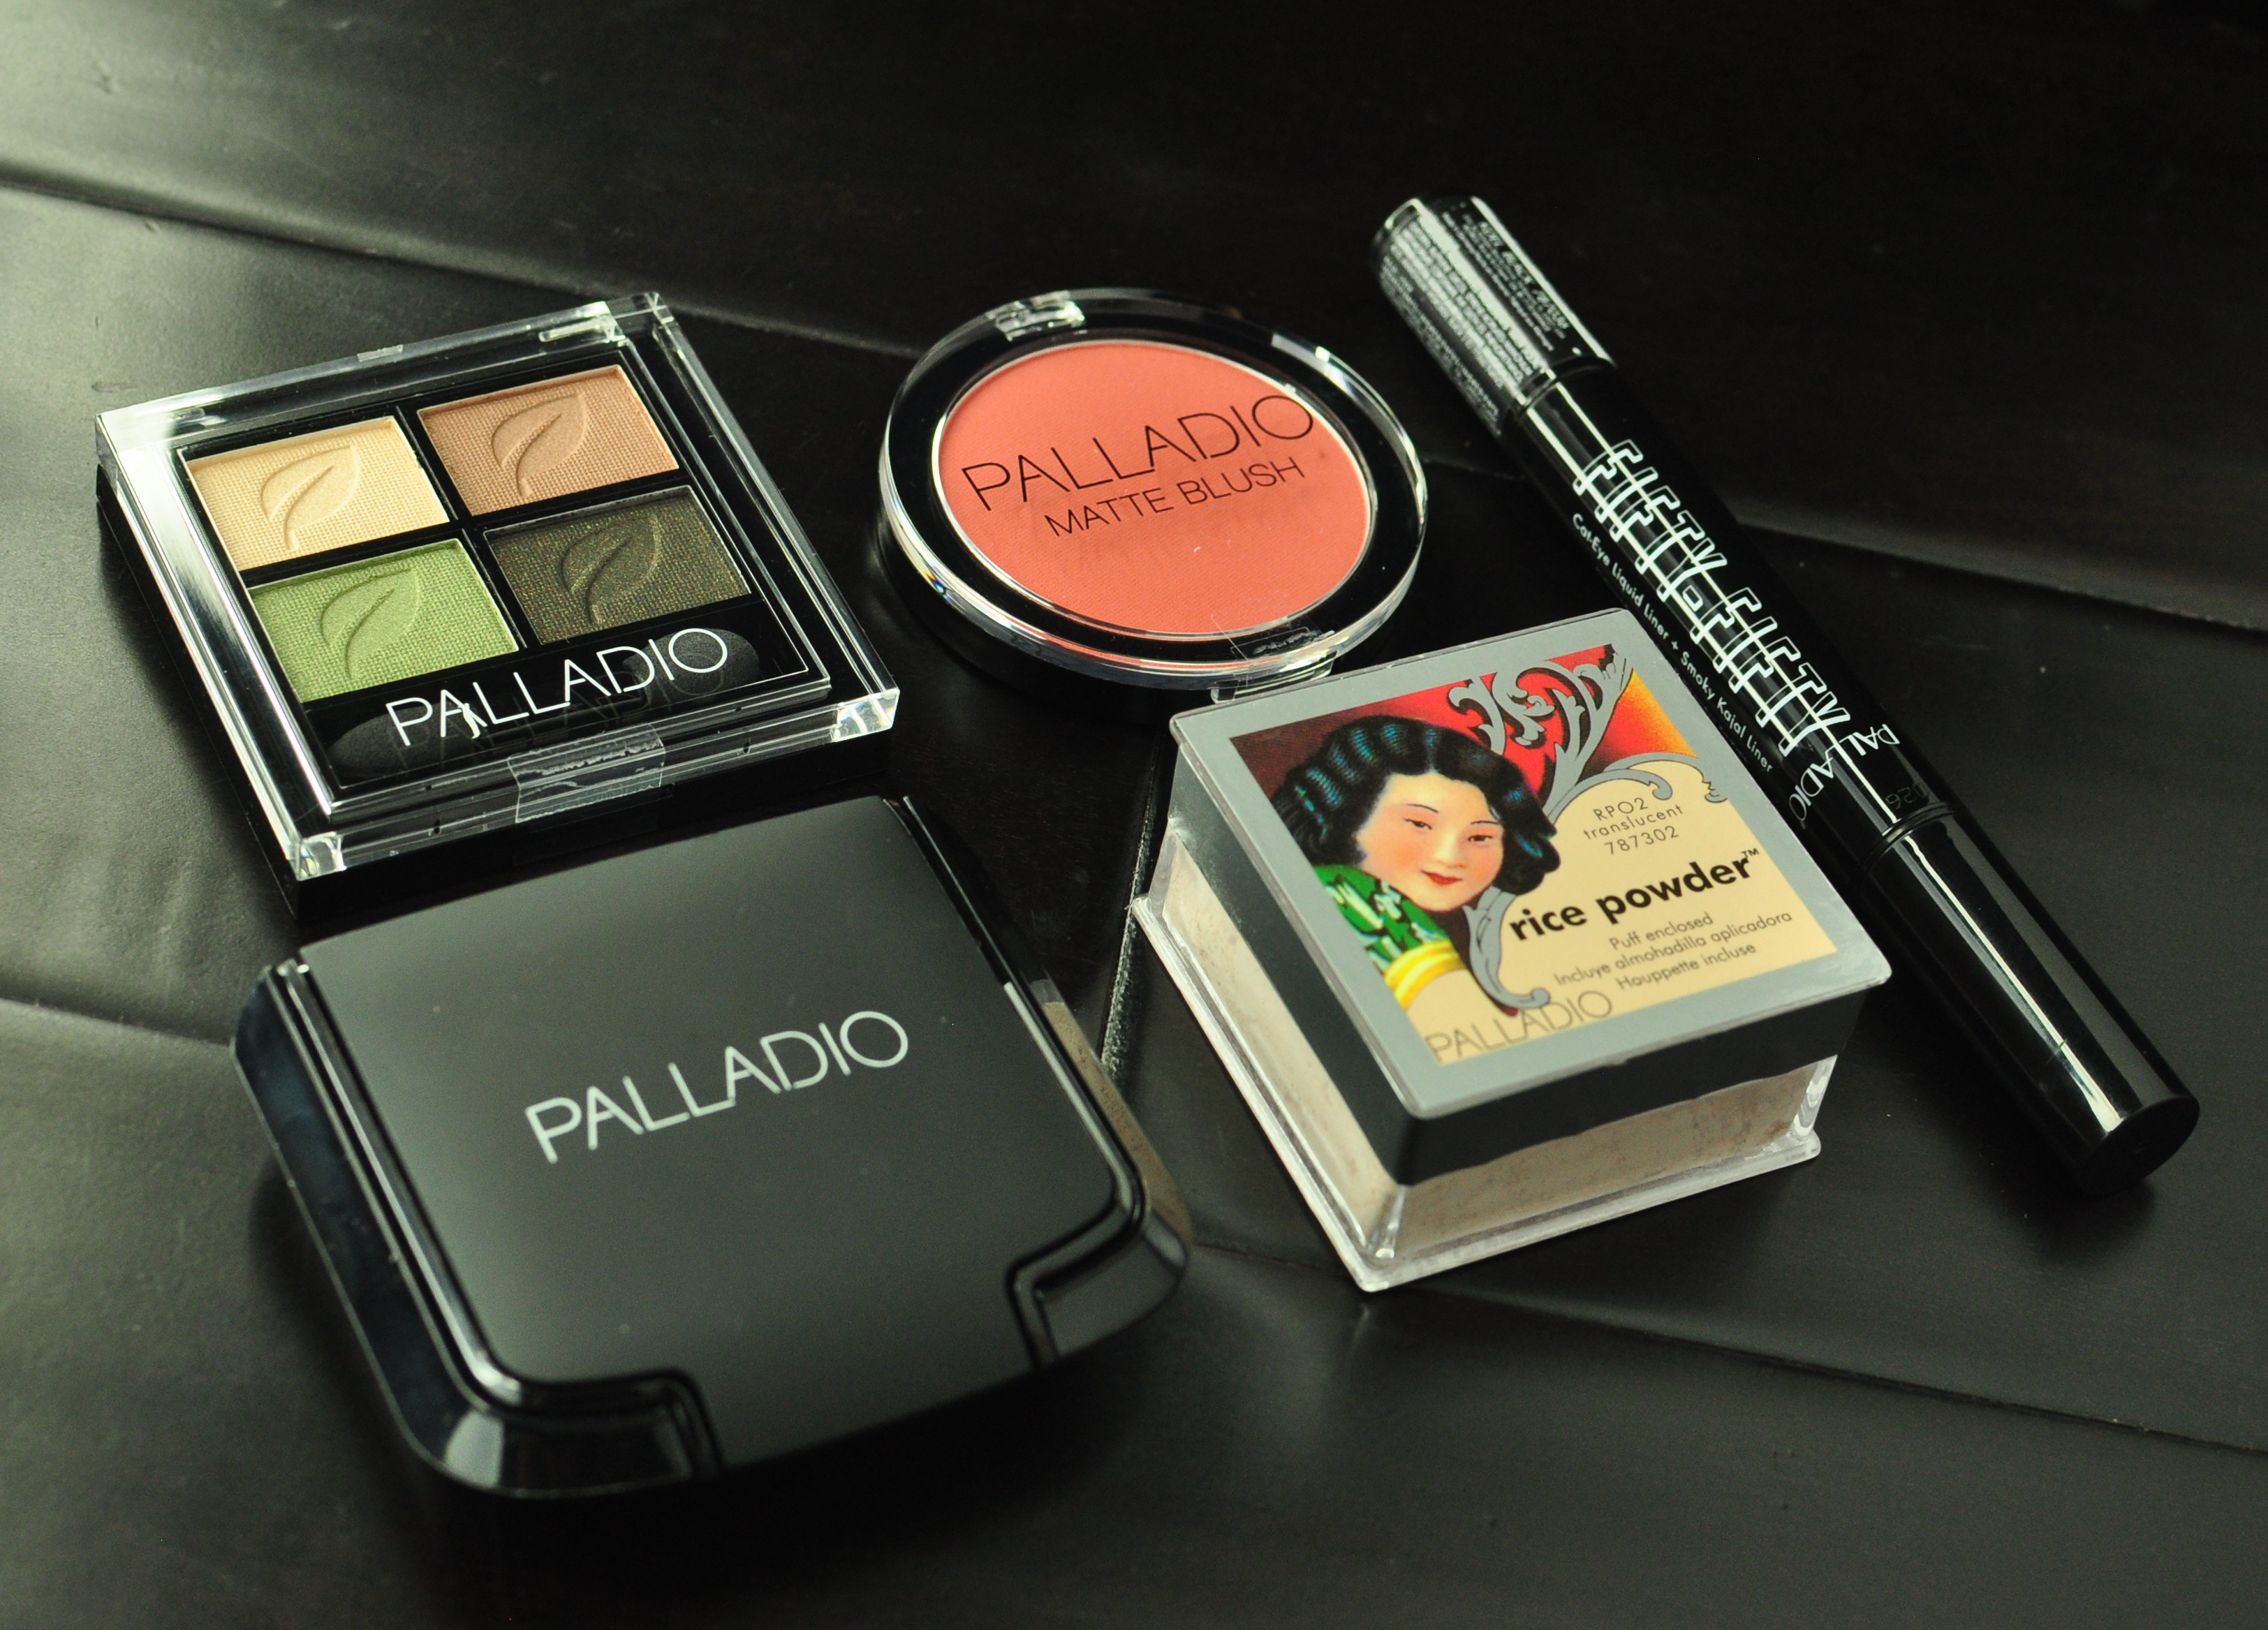 Palladio Beauty Makeup Review and Swatches Makeup